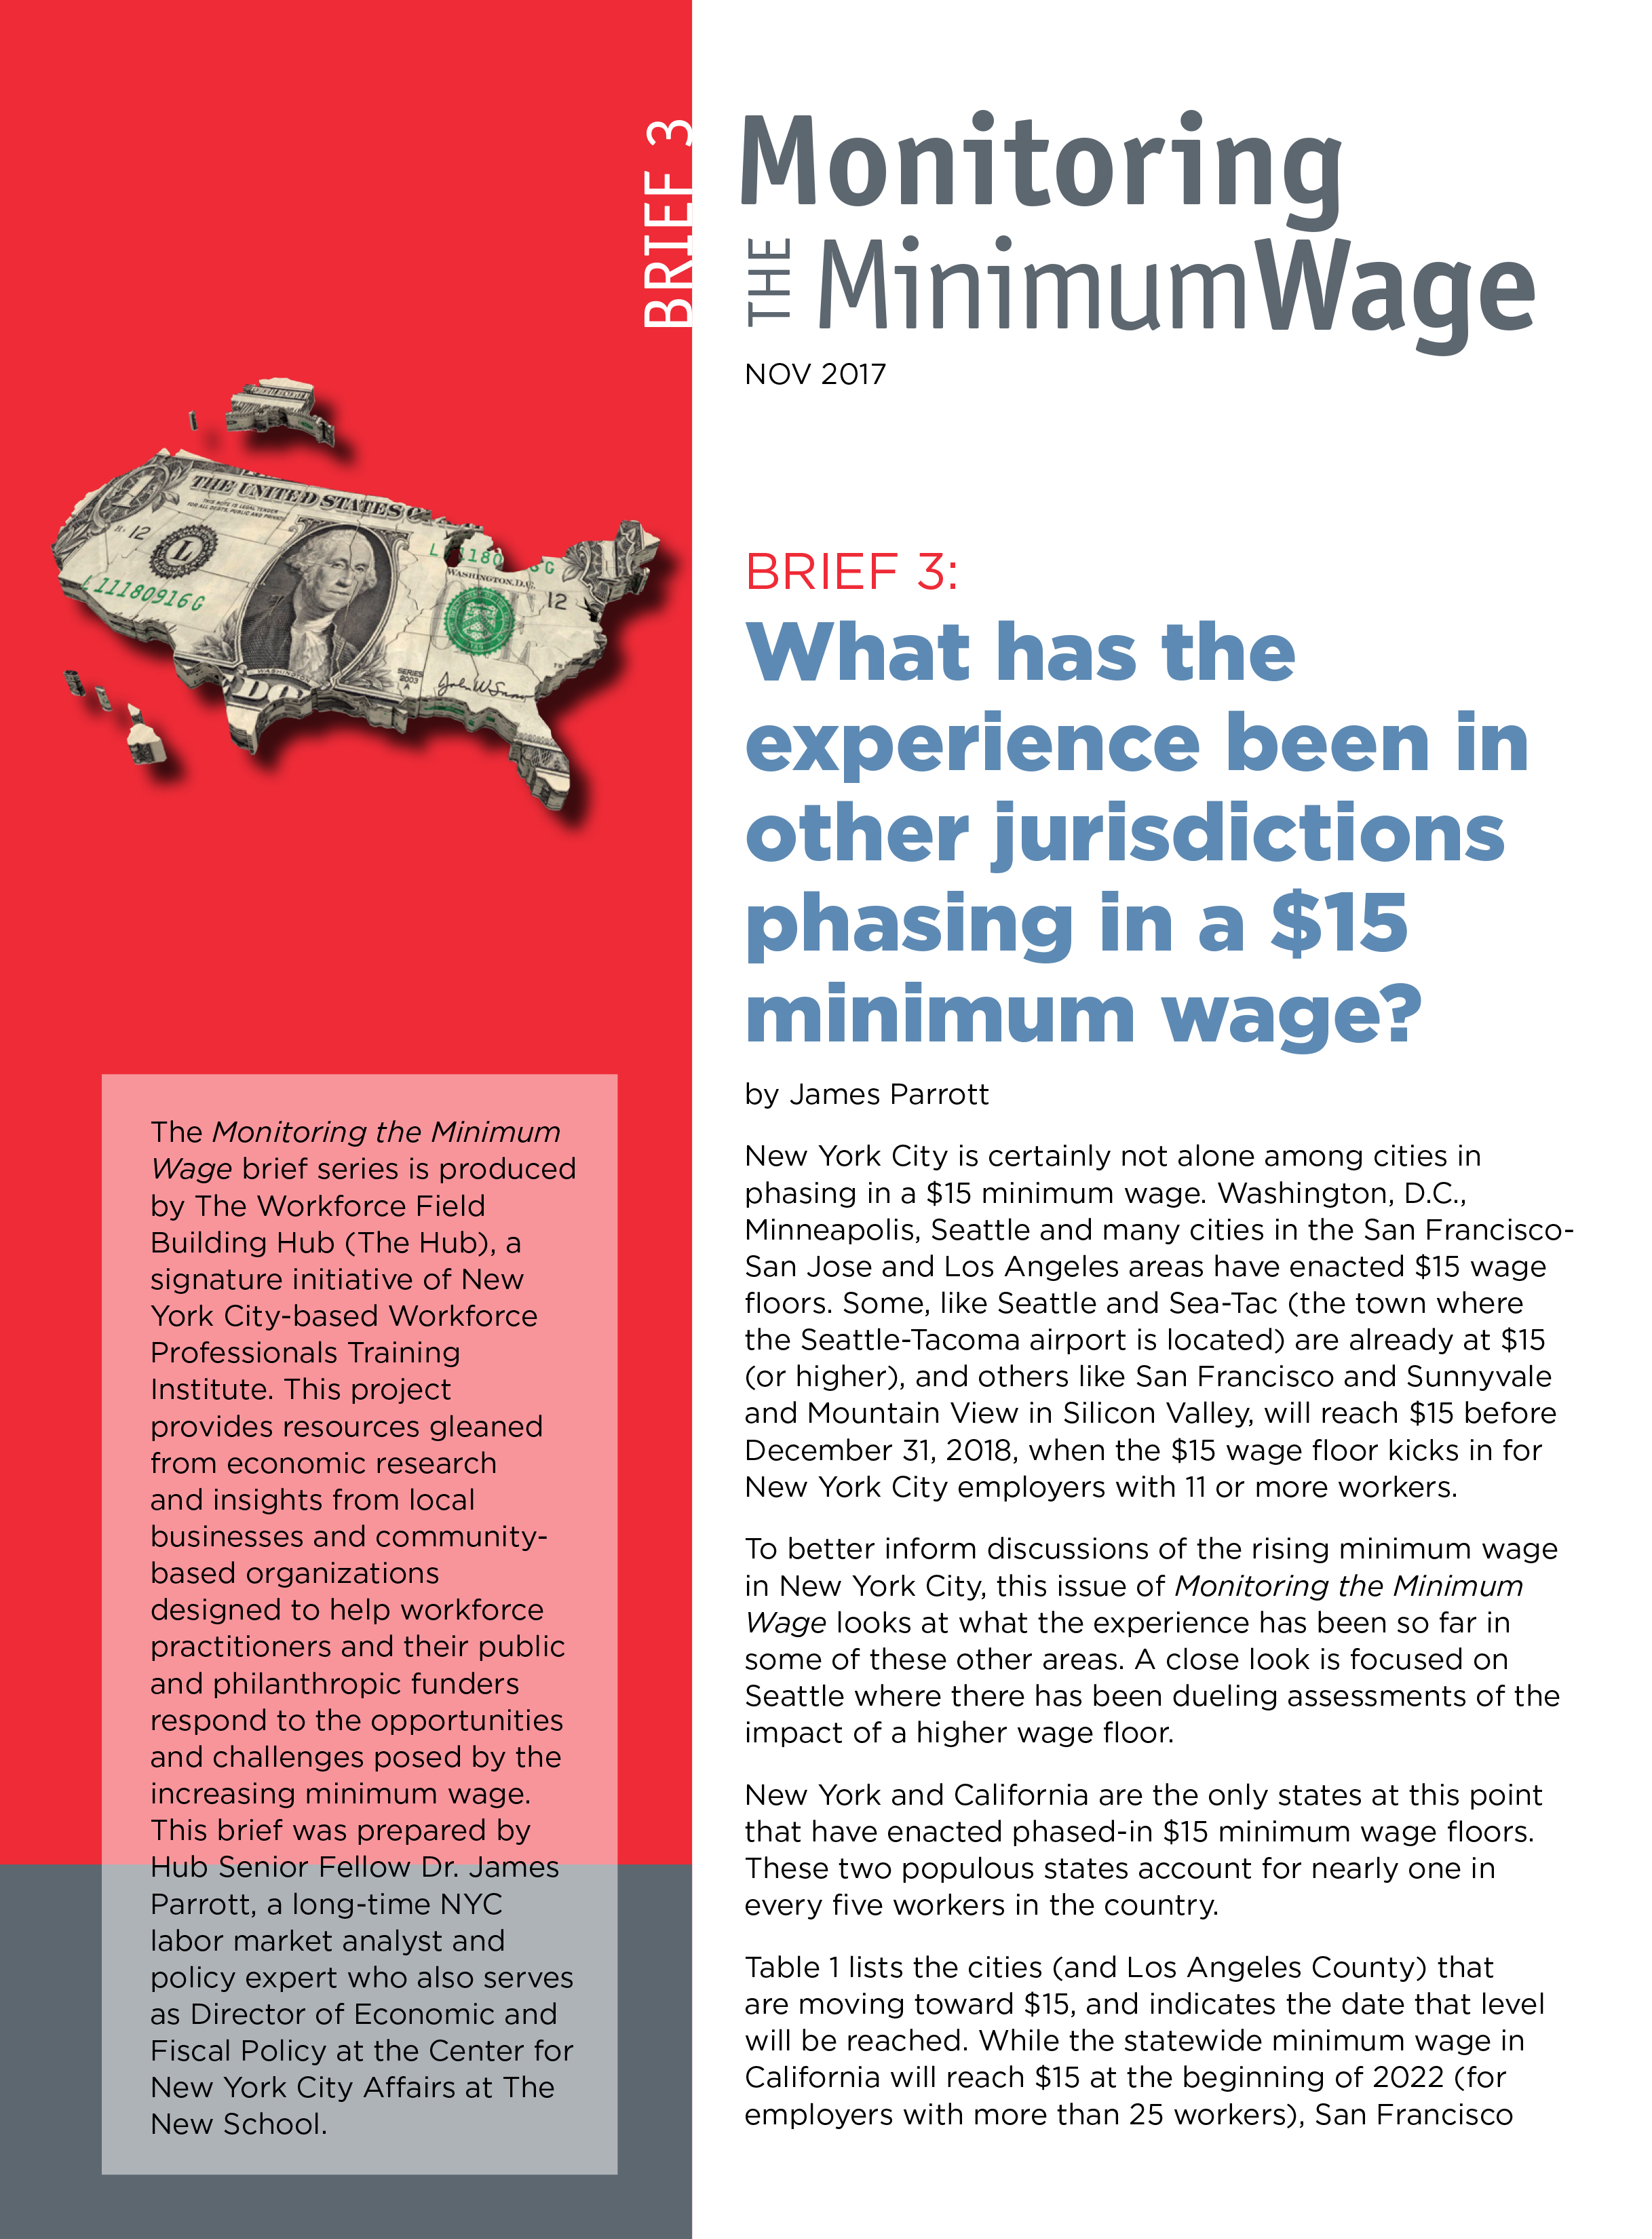 Monitoring the Minimum Wage Brief 3 November 2017-1.jpg